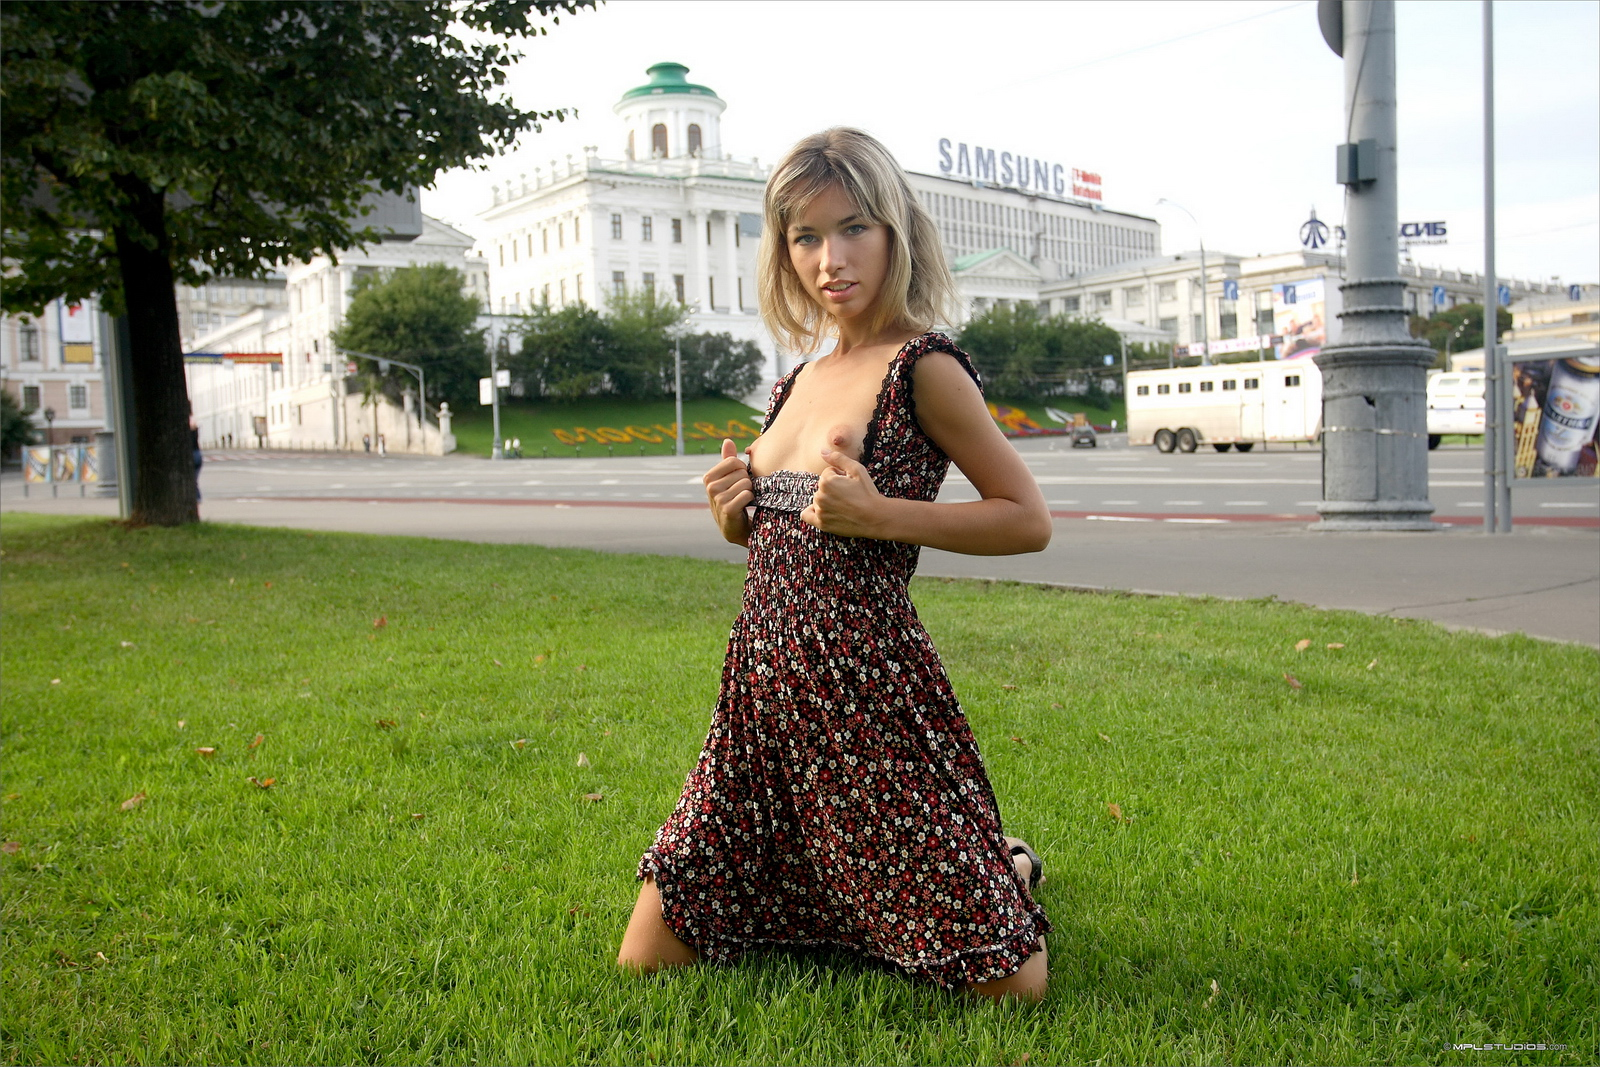 https://redbust.com/stuff/natalia-postcard-from-moscow/lia-flash-in-public-moscow-slim-girl-mplstudios-20.jpg